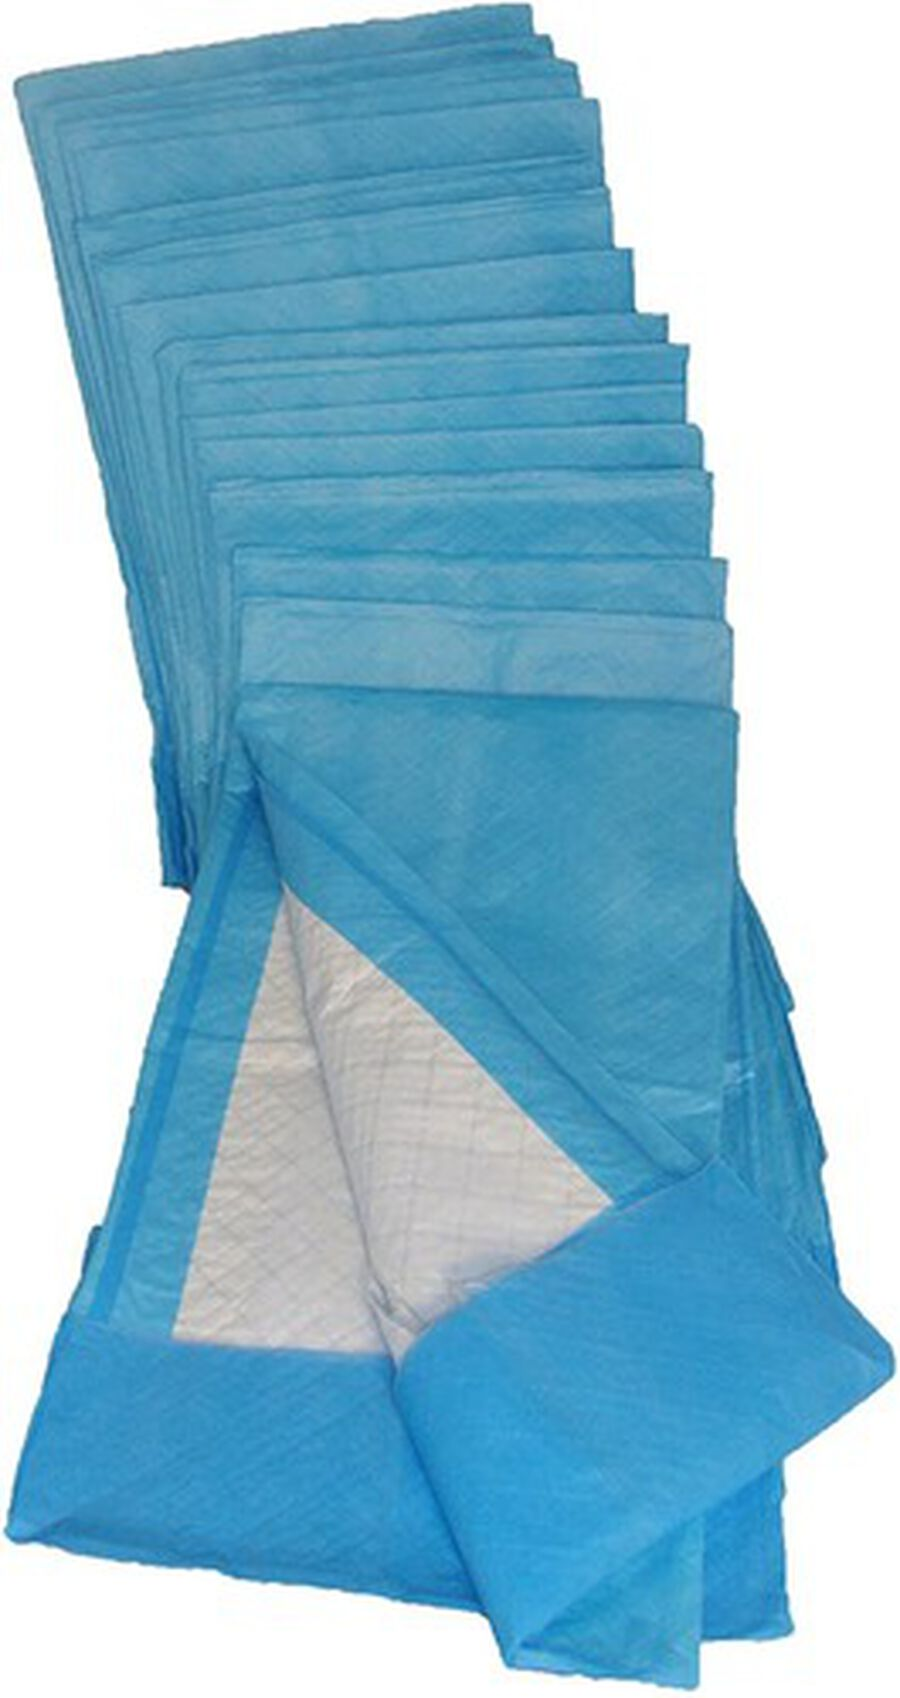 """Pharma Supply Disposable Quilted Fluff Underpad 23"""" x 36"""", Blue, Water-proof, Latex-free (45 g) (Pack of 50), , large image number 0"""